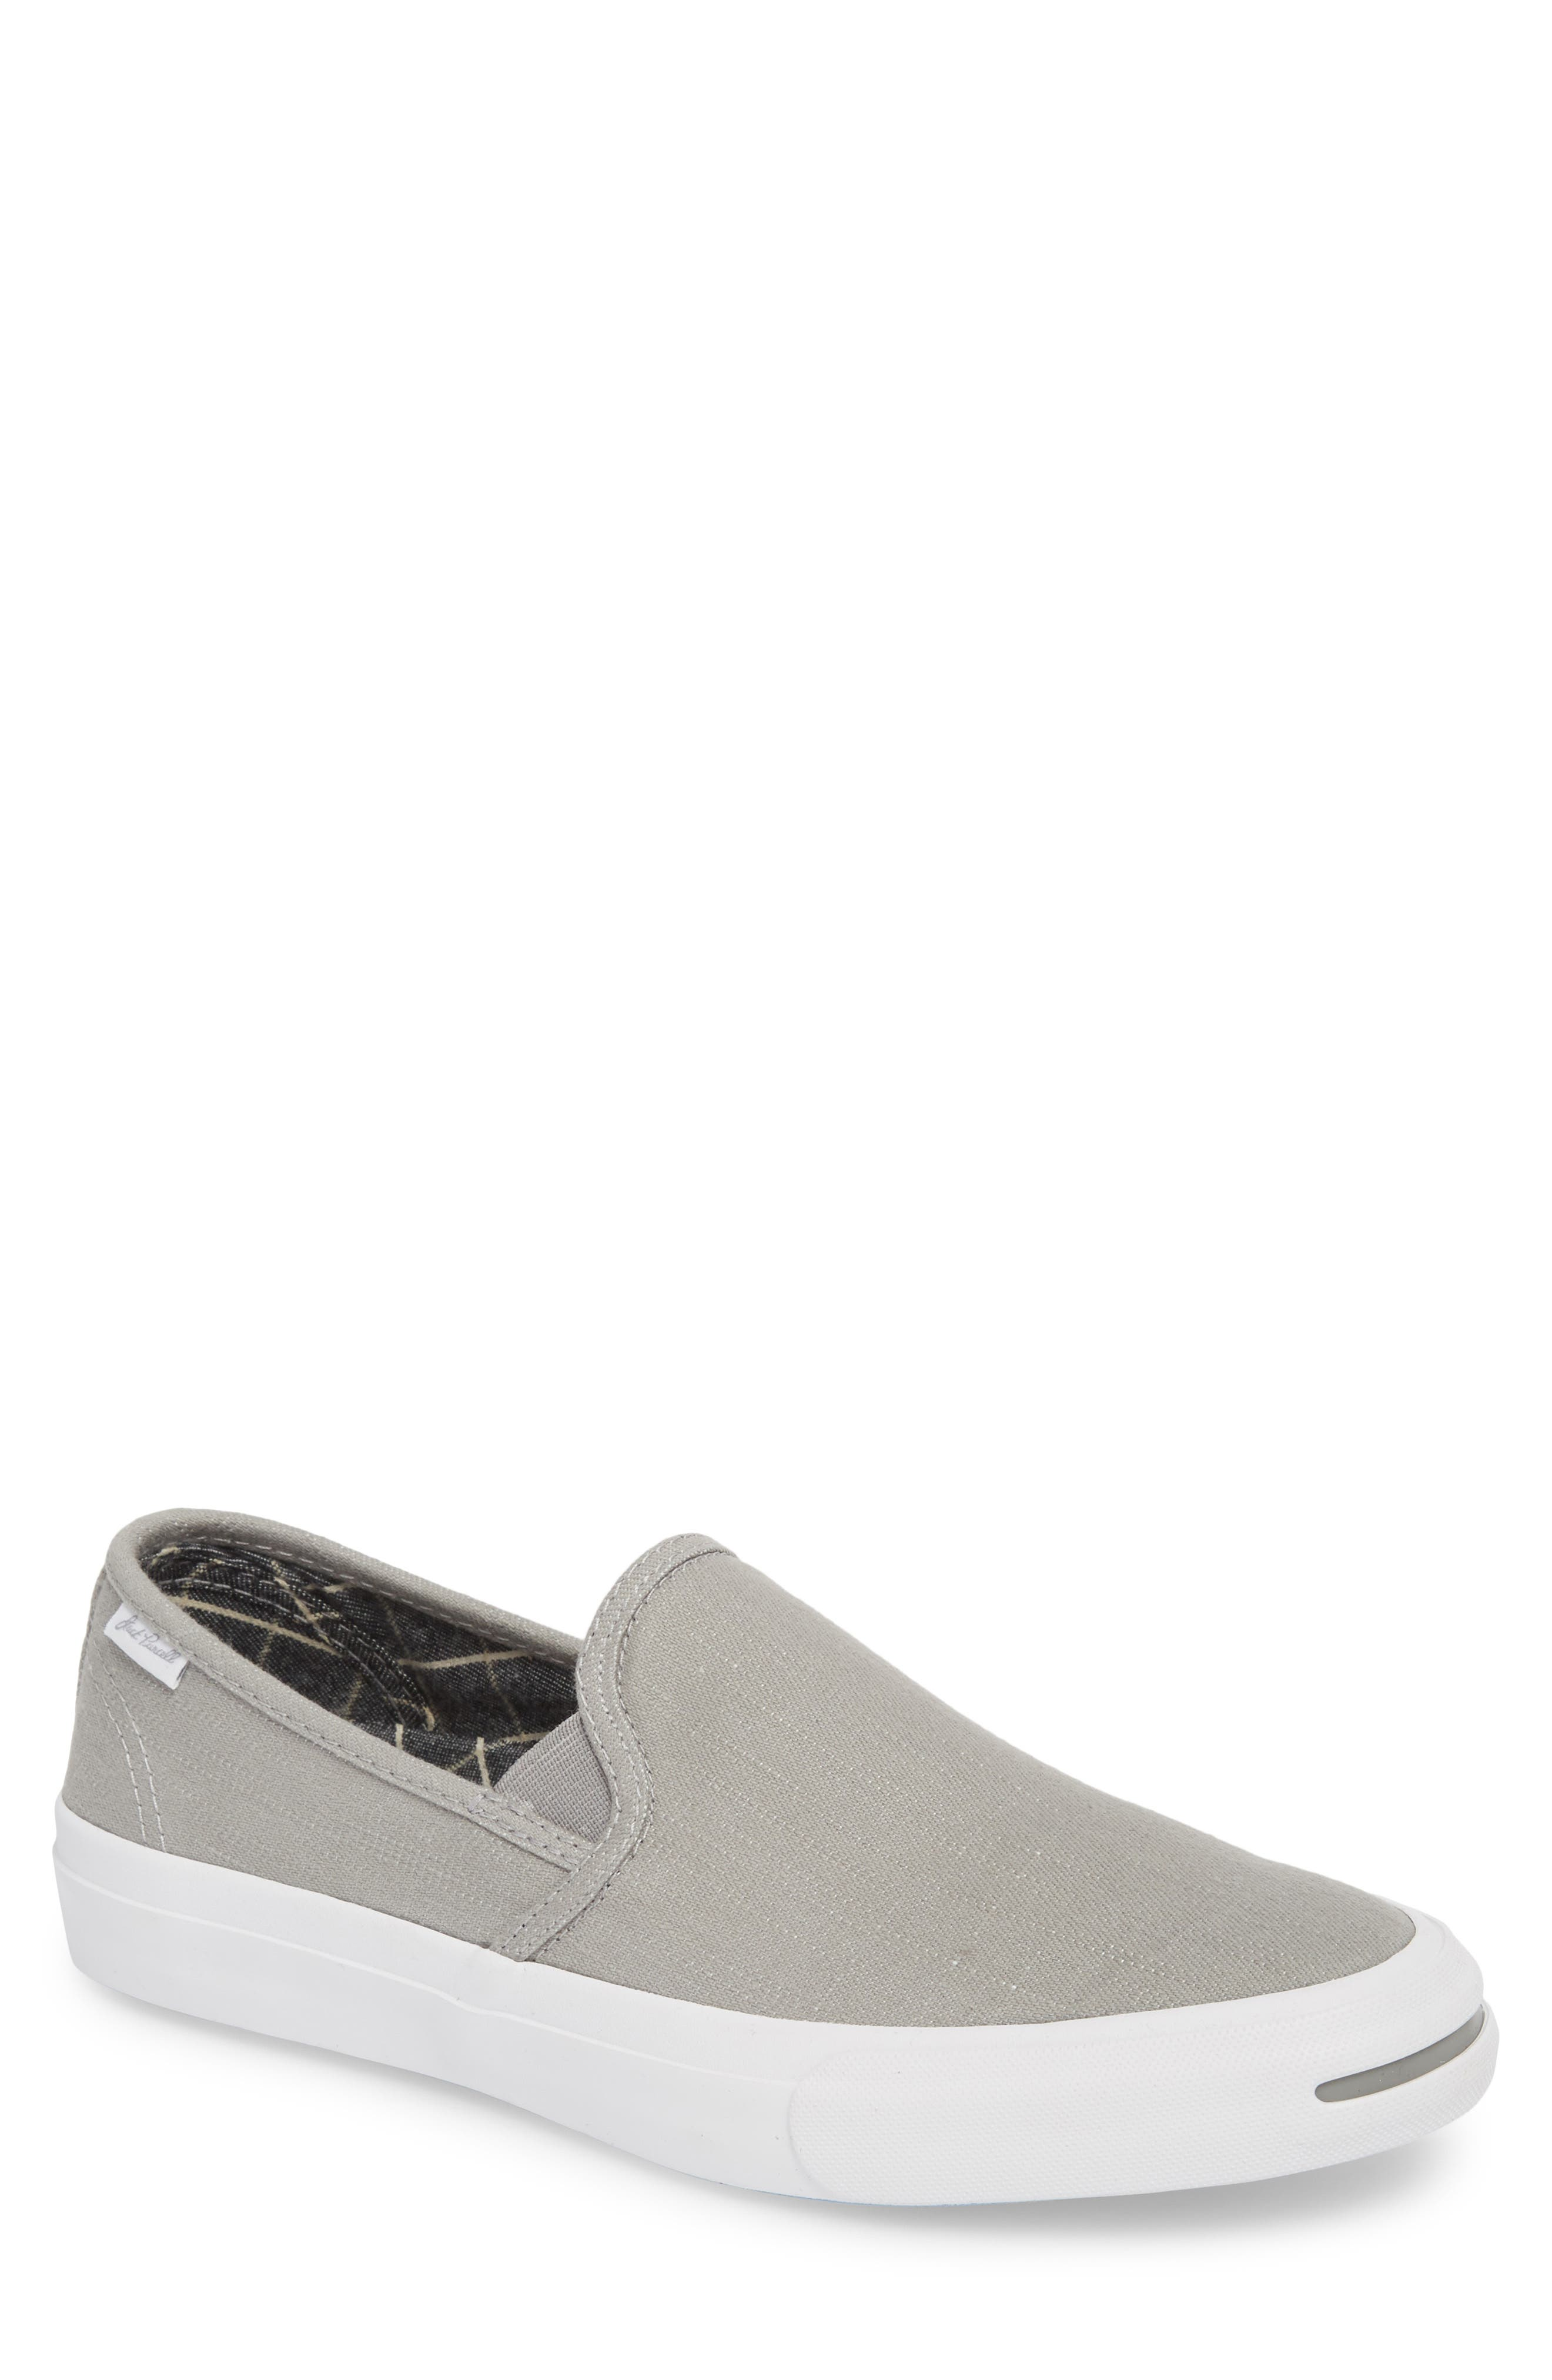 Jack Purcell Low Profile Slip-On Sneaker,                         Main,                         color, 020